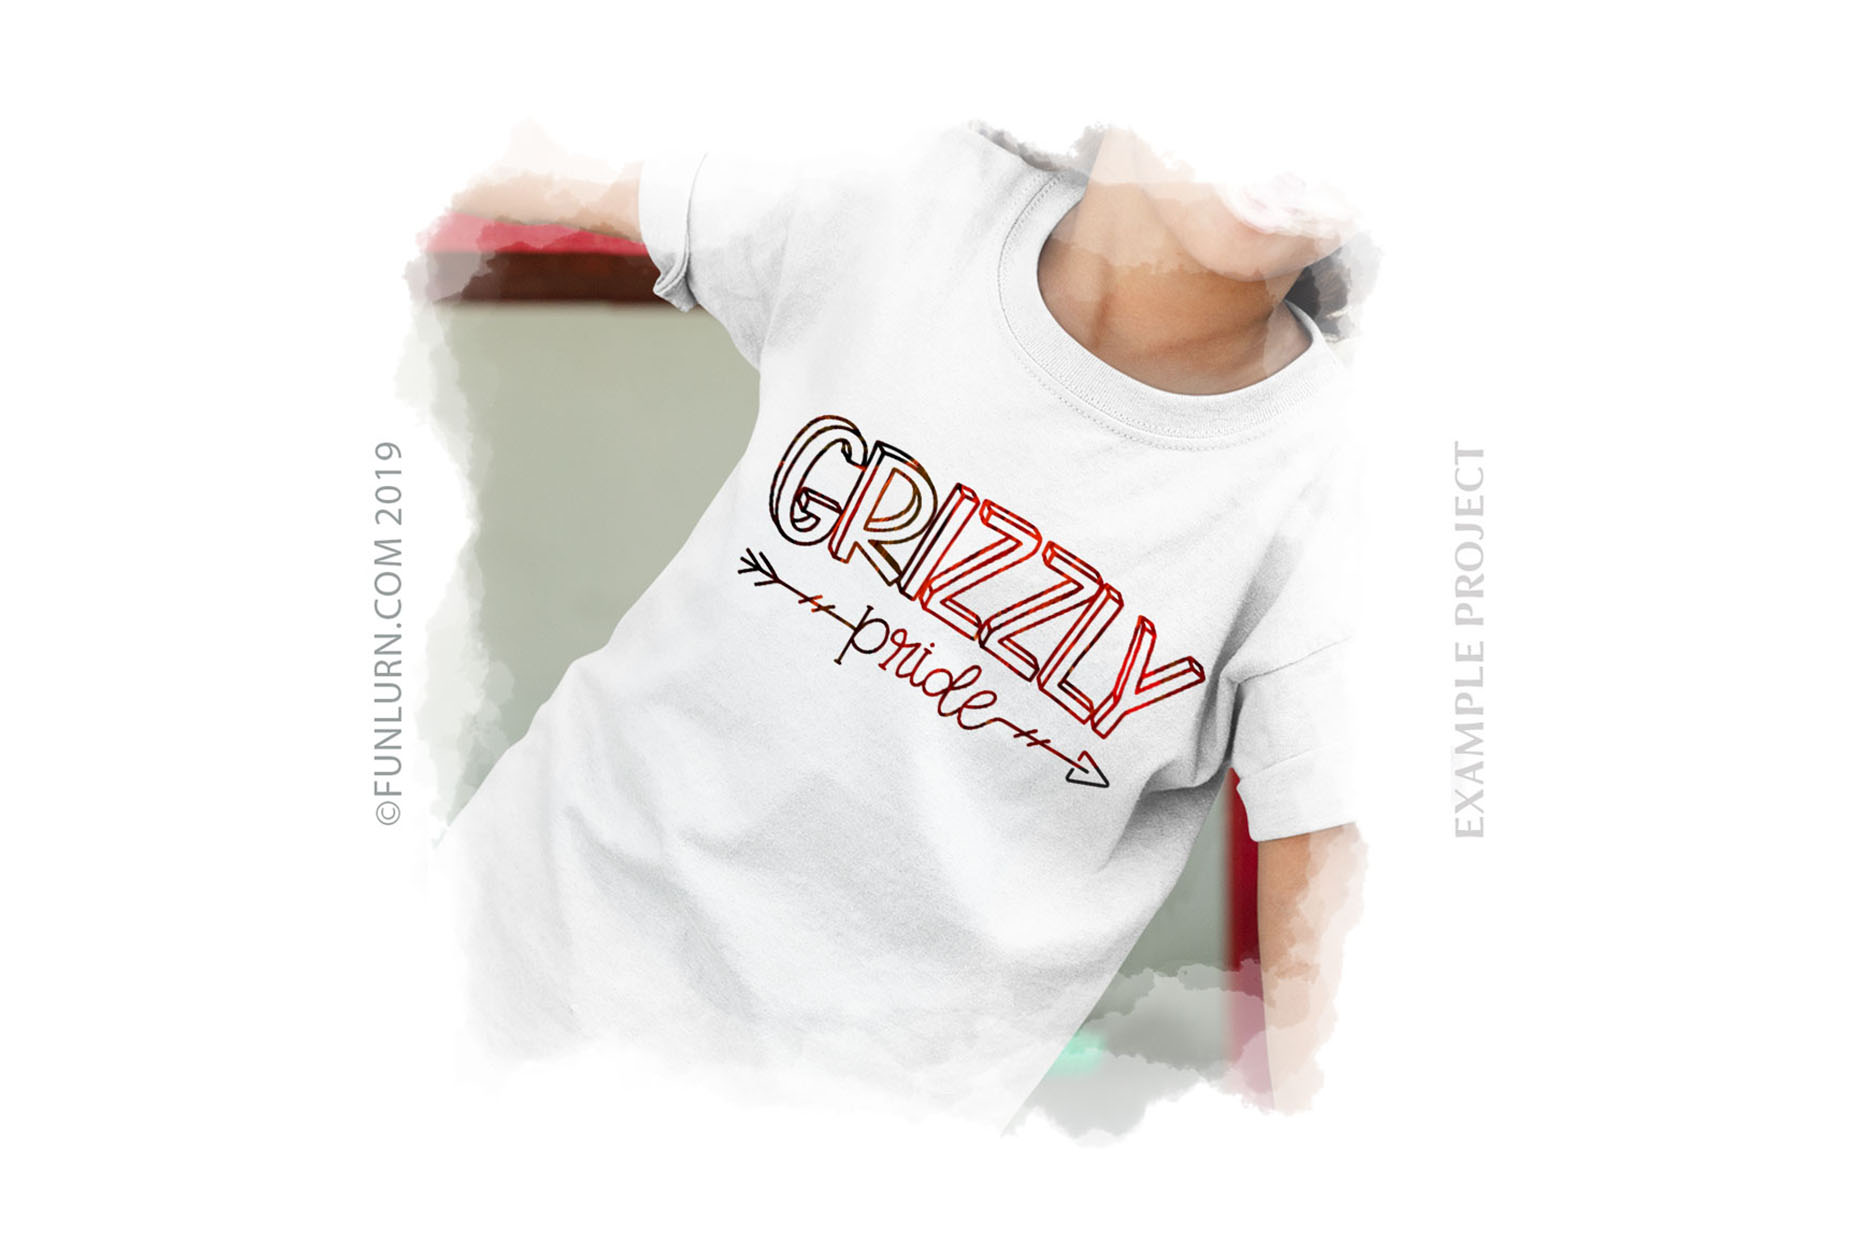 Grizzly Pride Team SVG Cut File example image 3